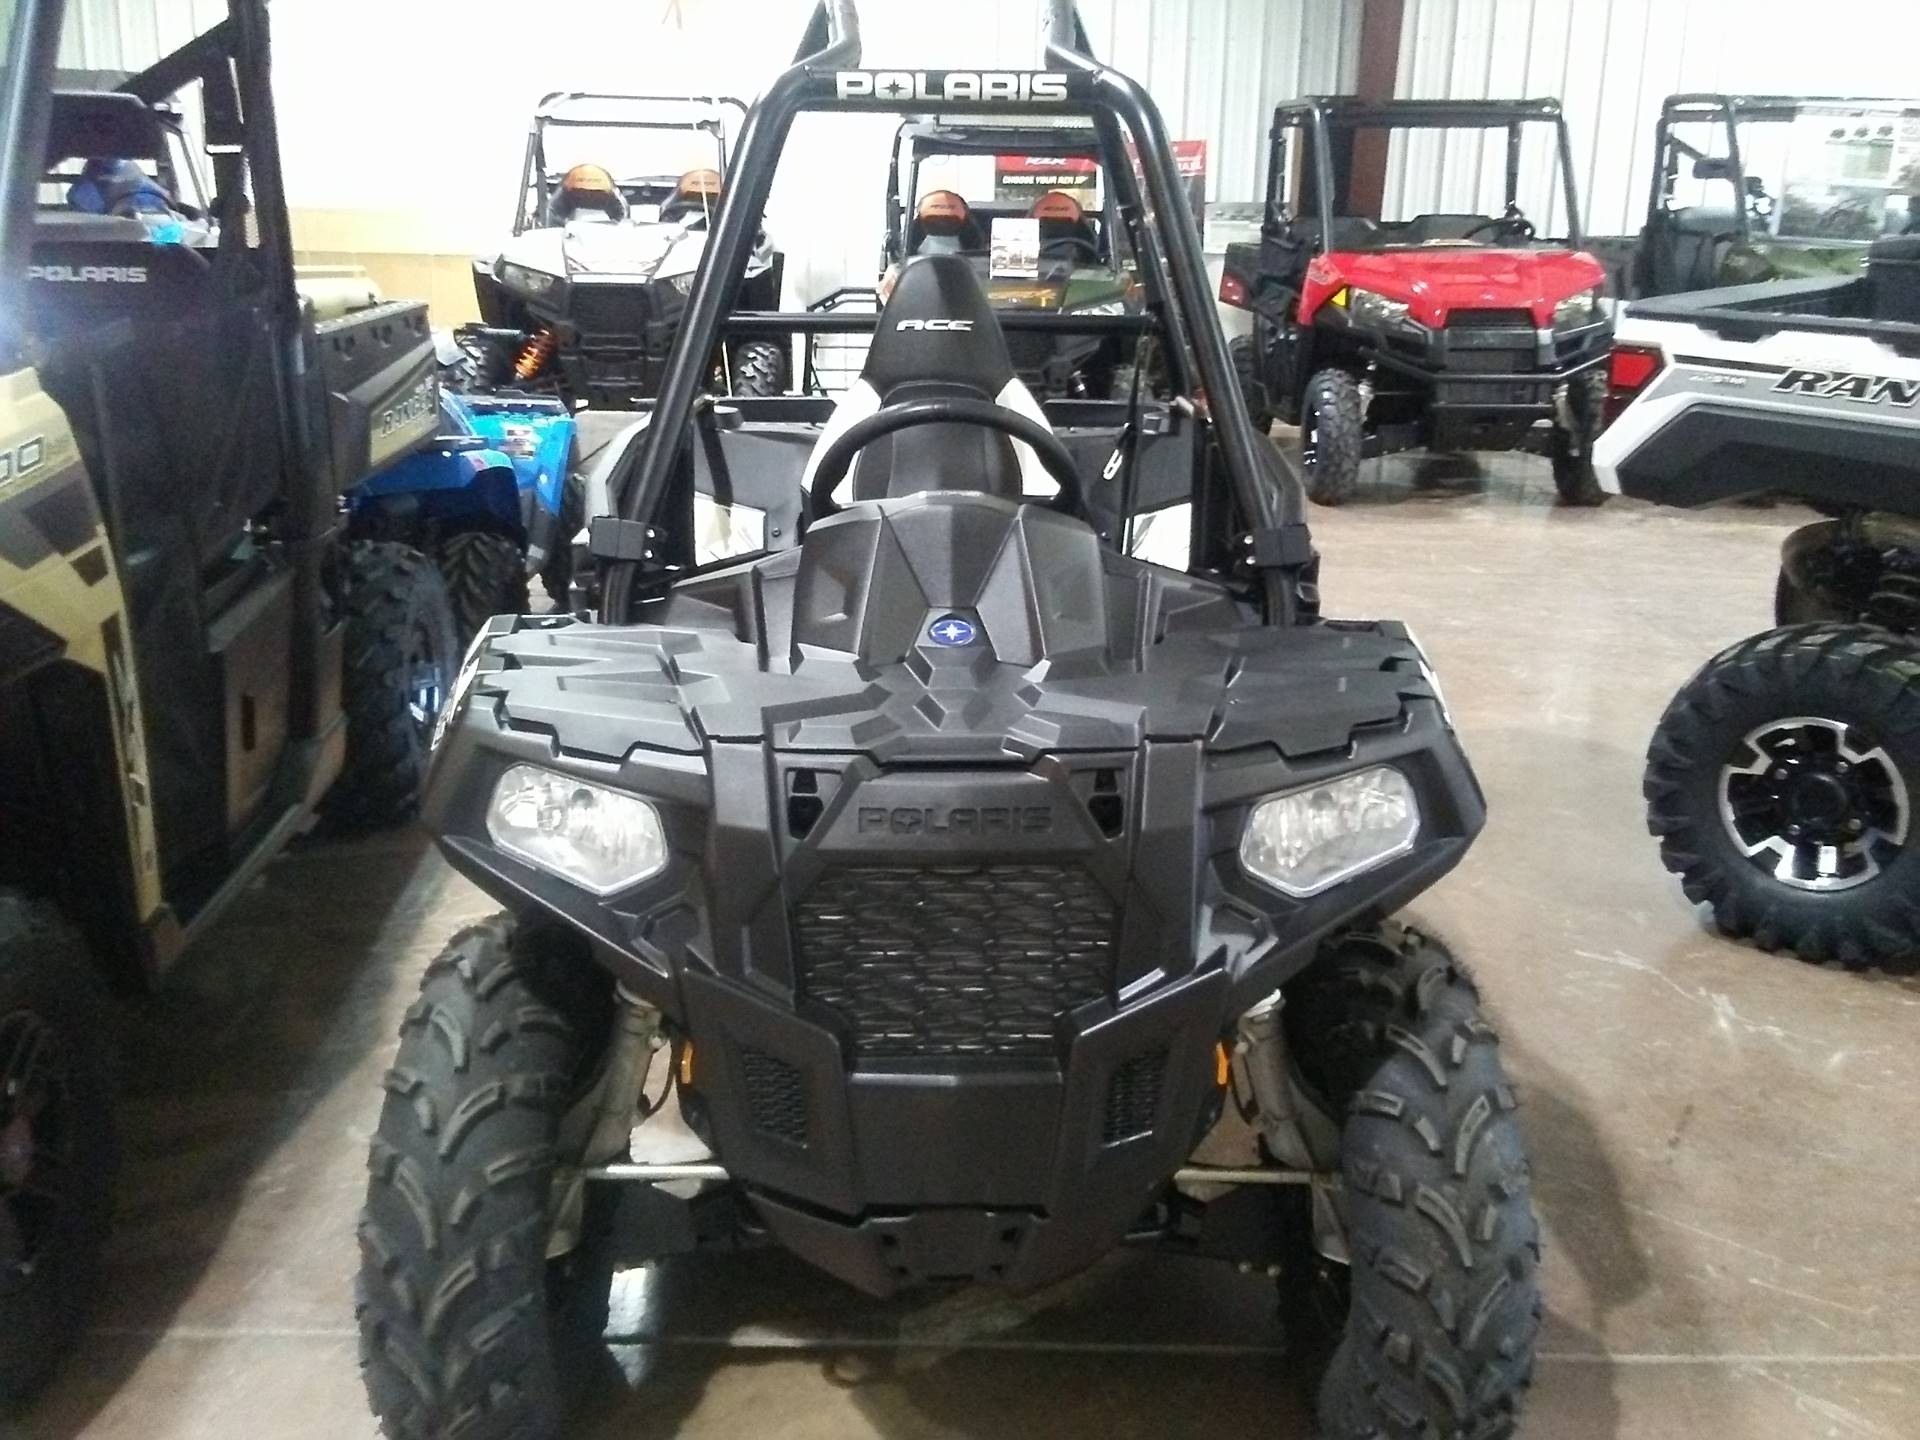 2016 Polaris ACE 900 SP in Prosperity, Pennsylvania - Photo 2